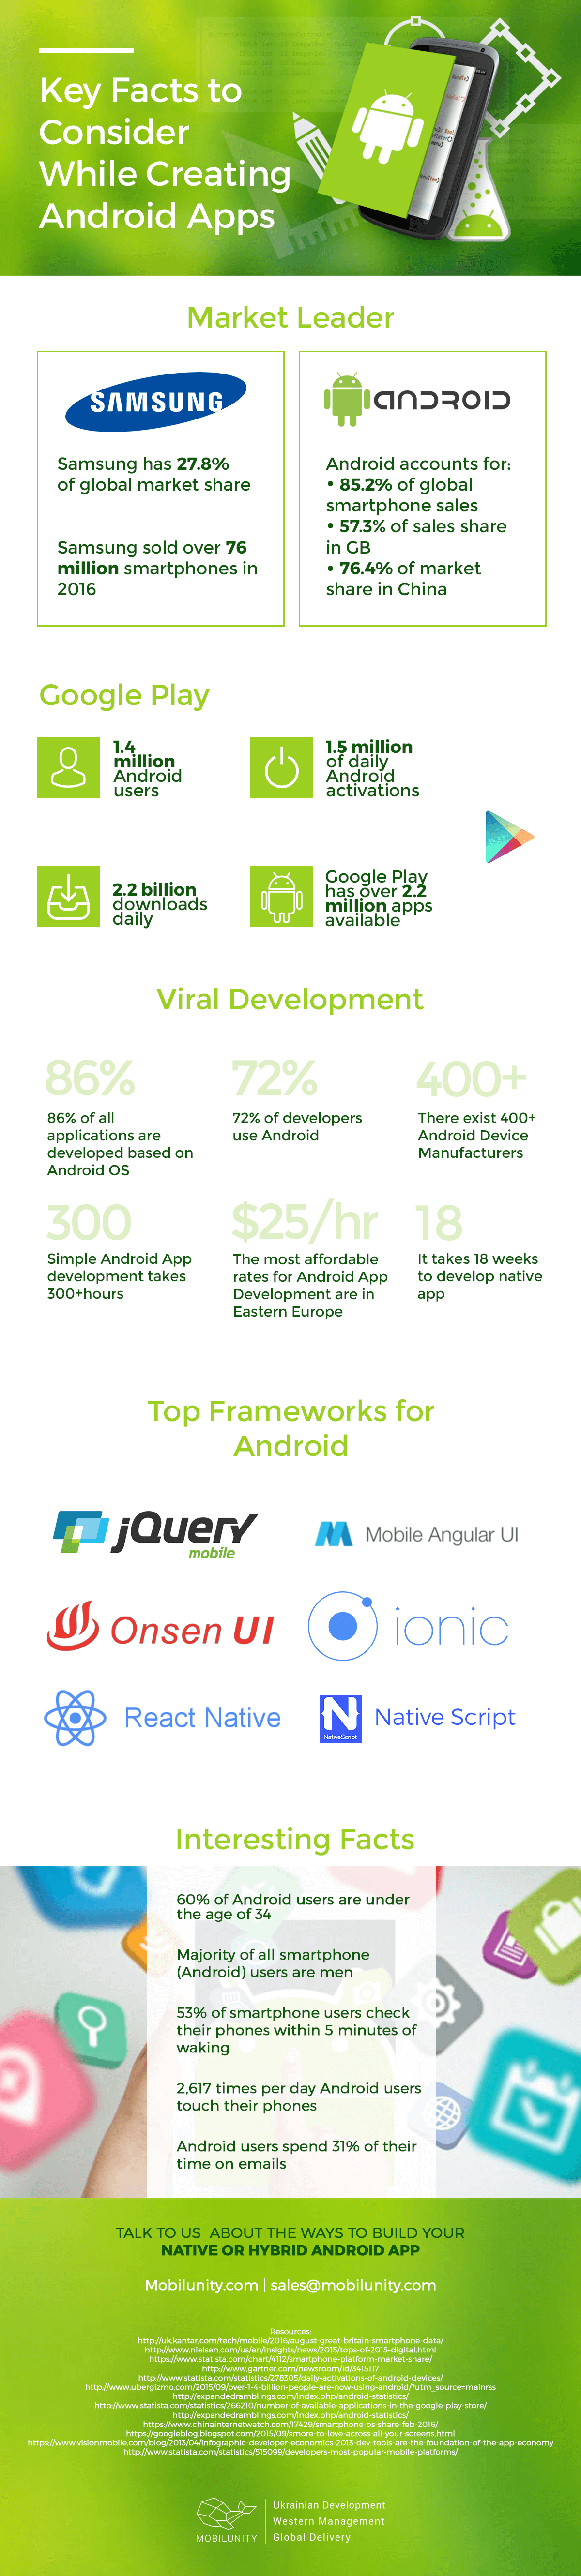 iOS vs Android Developer Salary – Global Comparison | Mobilunity